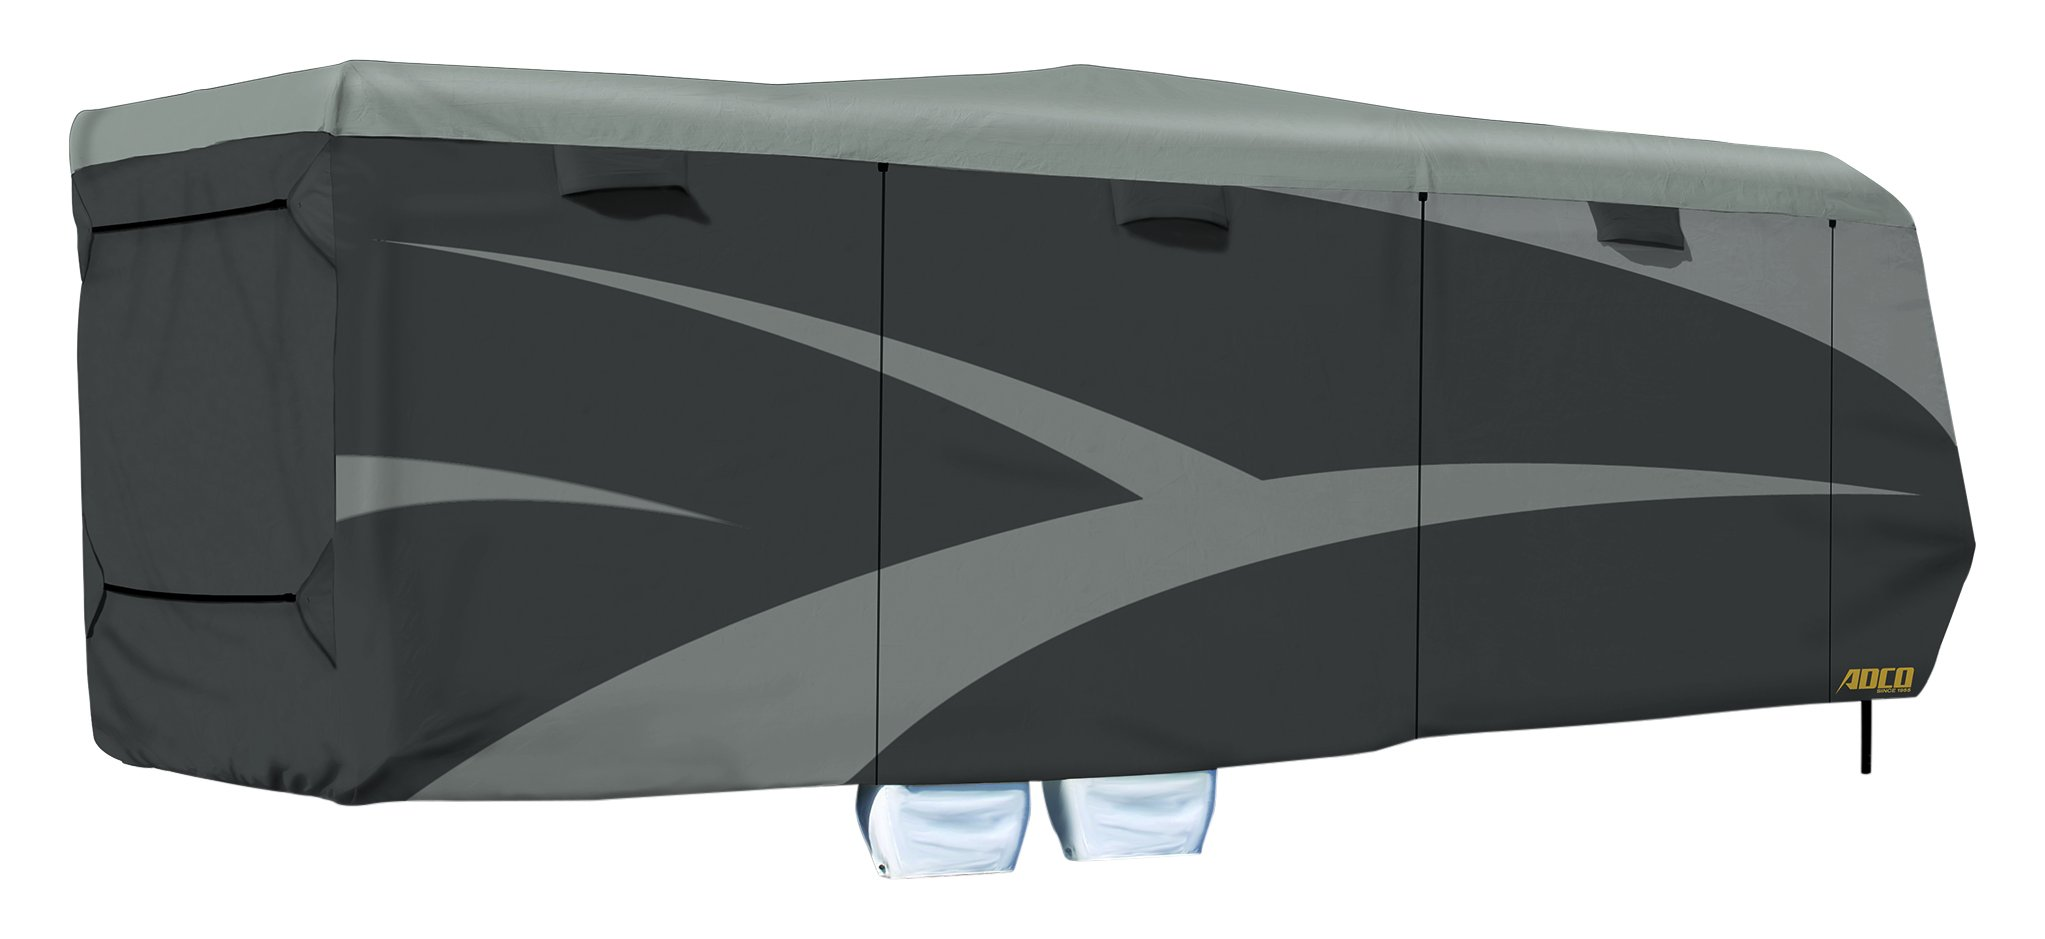 ADCO 52275 Toy Hauler Designer Series SFS AquaShed Cover, Fits 30'1''-33'6'' Trailers, Gray by ADCO (Image #1)